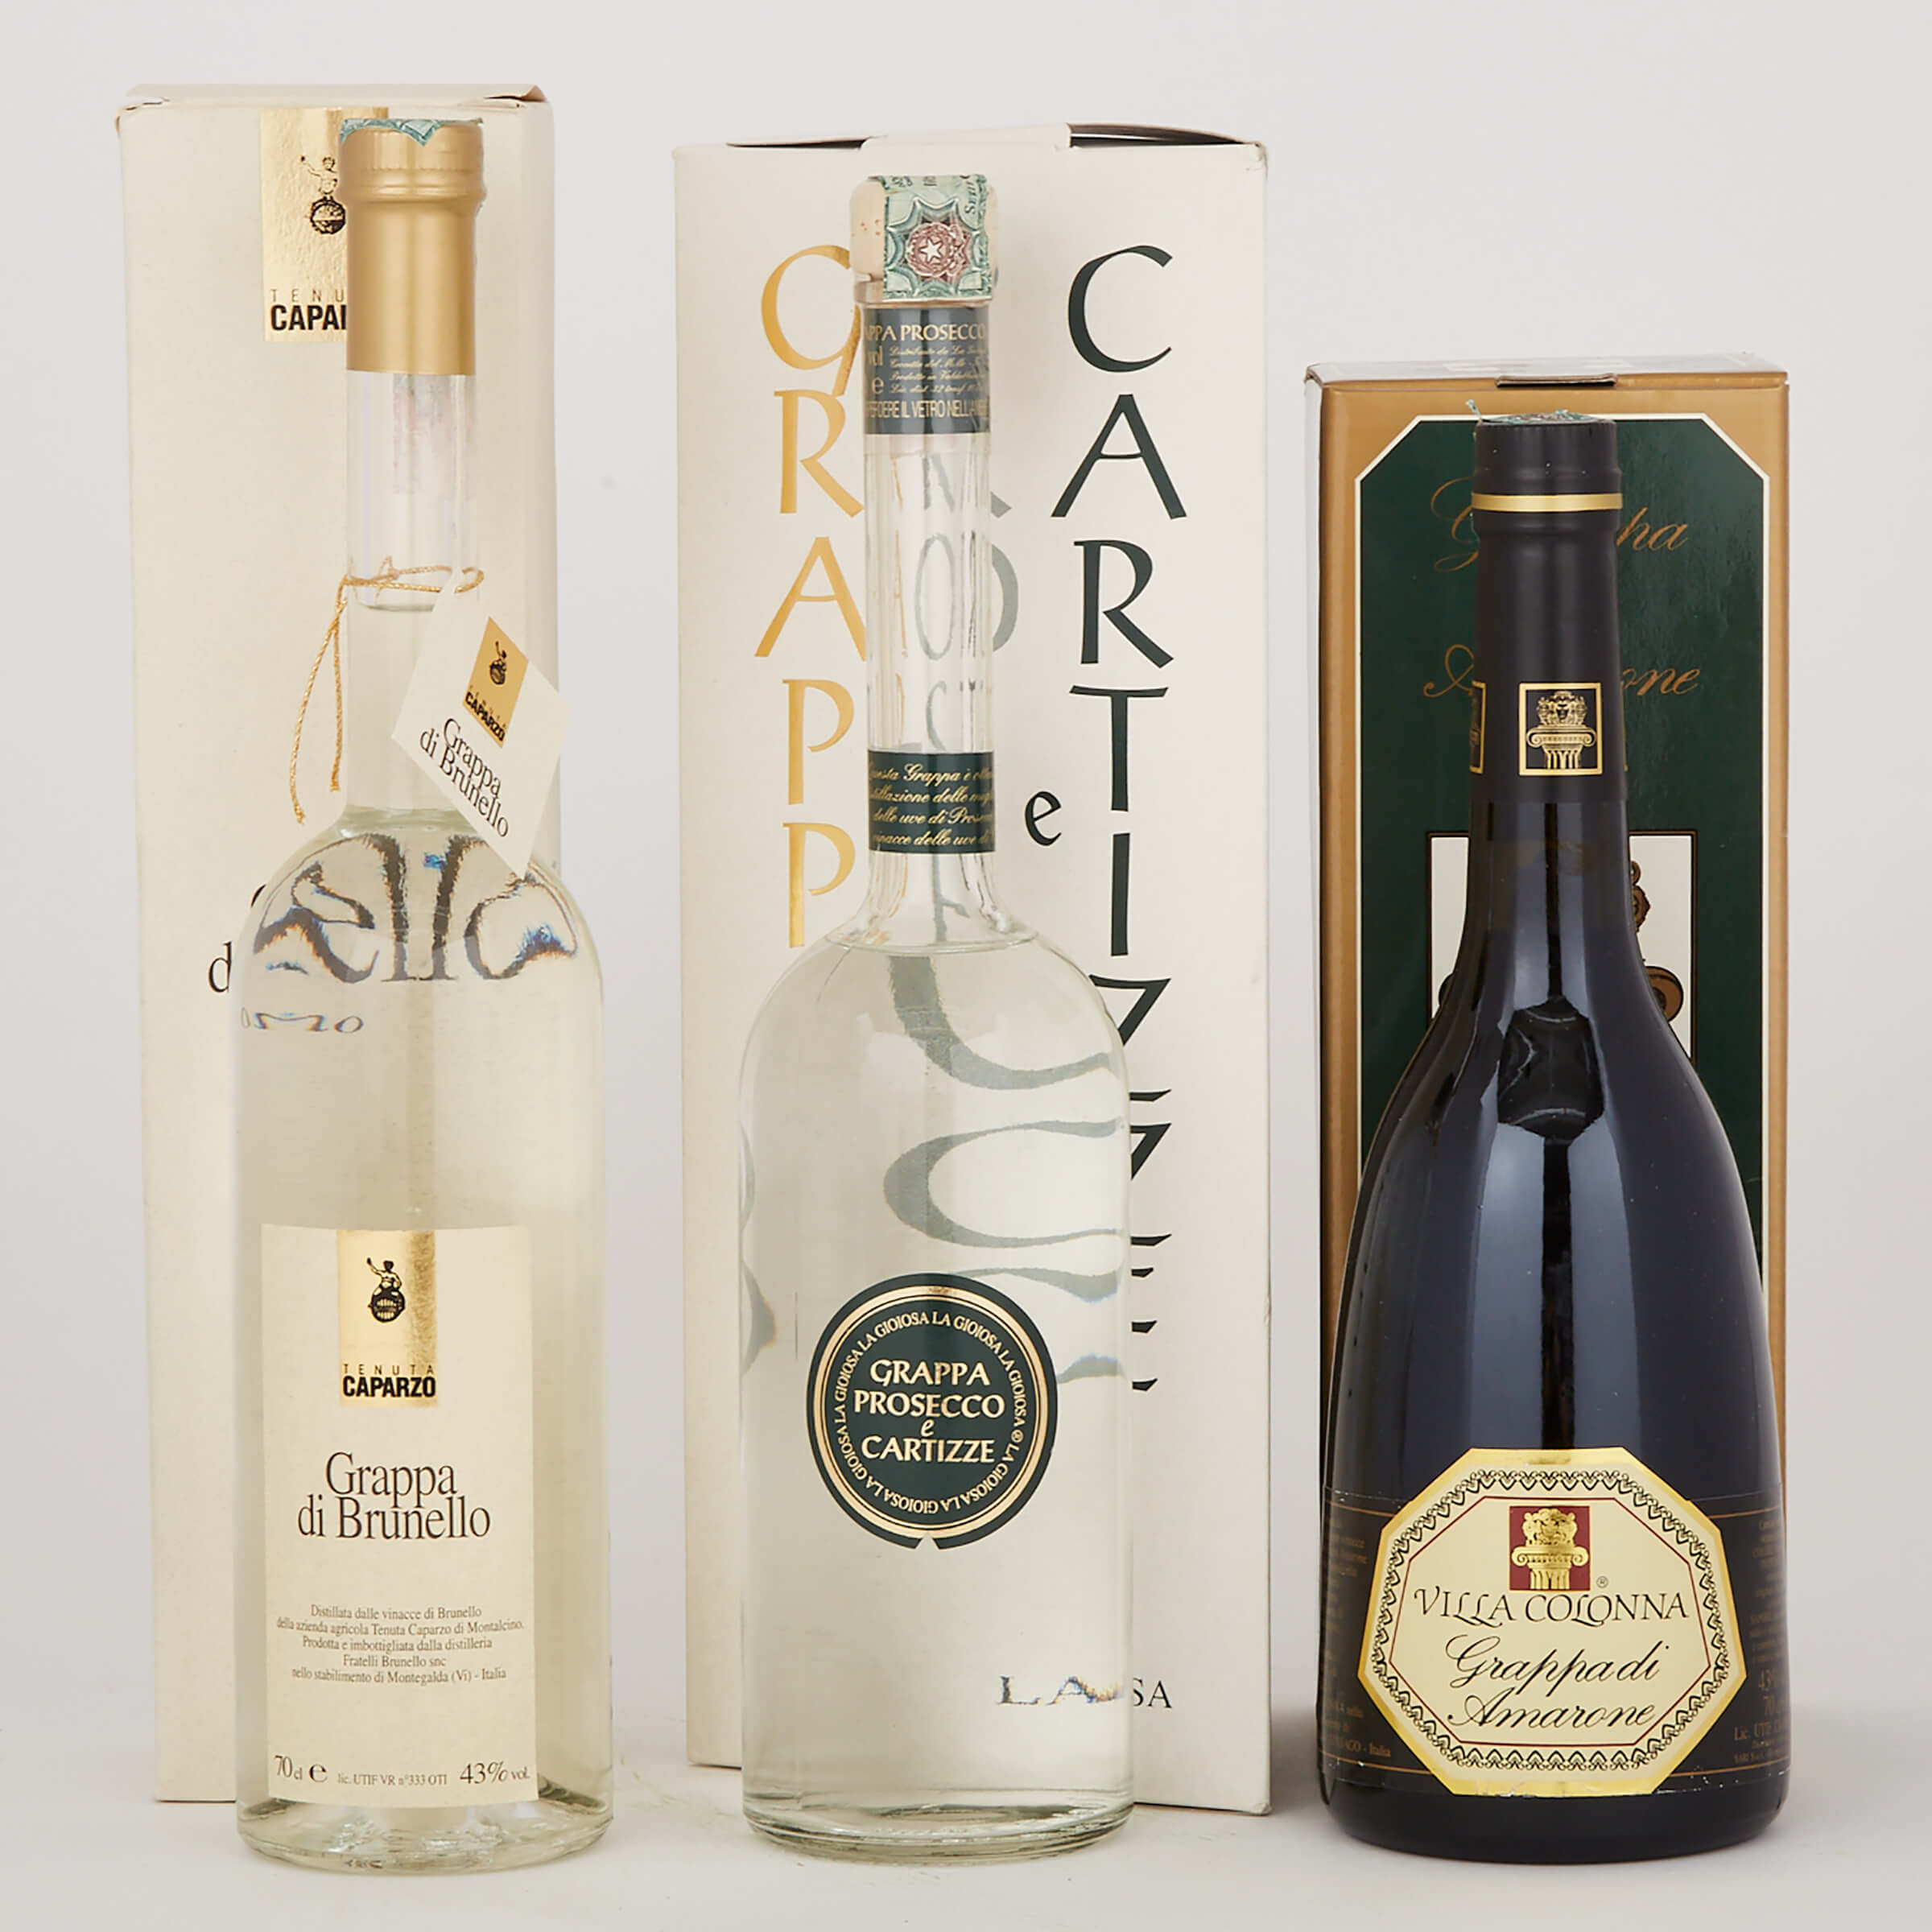 GRAPPA DI AMARONE (ONE 700 ML) GRAPPA DI BRUNELLO (ONE 700 ML) GRAPPA PROSECCO E CARTIZZE LA GIOIOSA (ONE 700 ML)